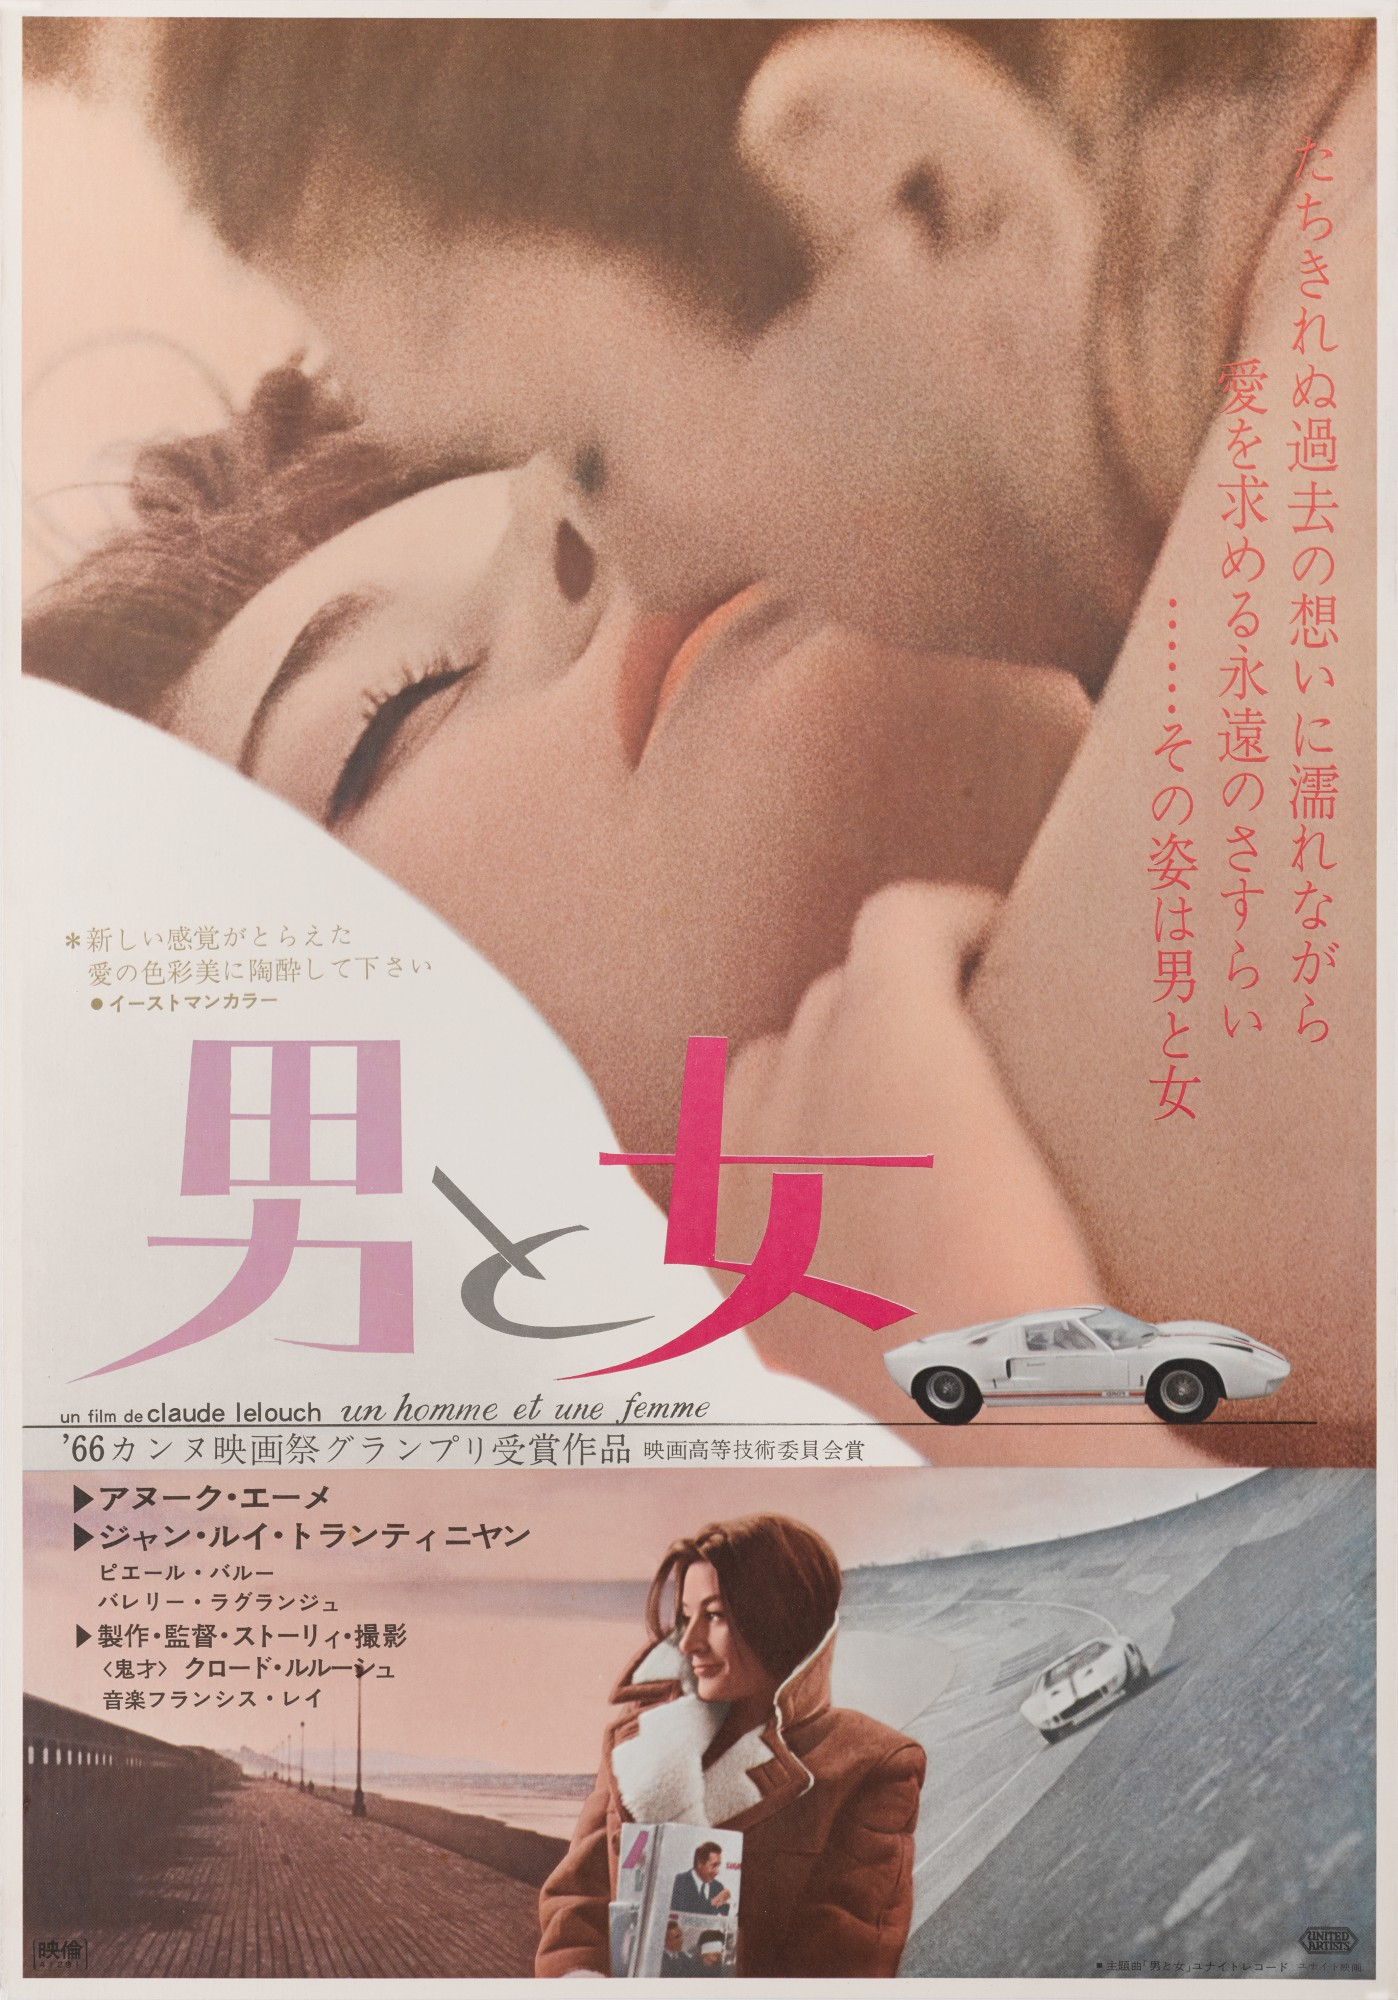 Un Homme Et Une Femme : homme, femme, HOMME, FEMME, WOMAN, (1966), POSTER,, JAPANESE, Original, Posters, Online, Collectibles, Sotheby's